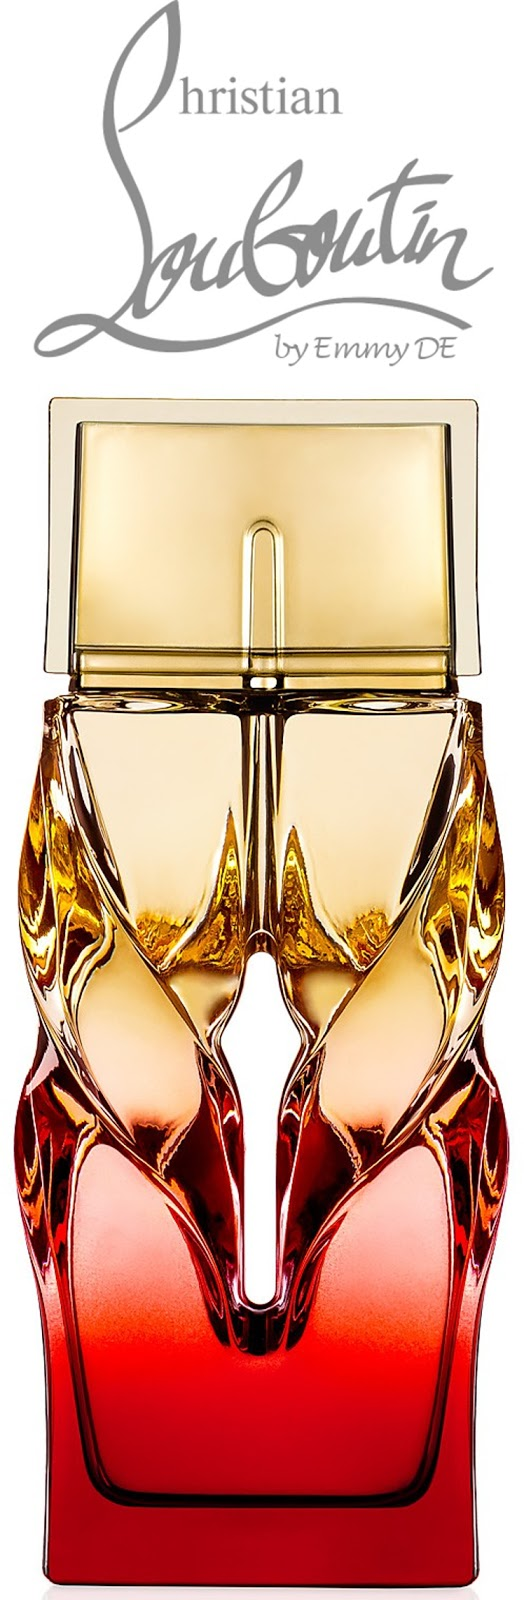 Brilliant Luxury ♦ Christian Louboutin Parfum Tornade Blonde #fragrance